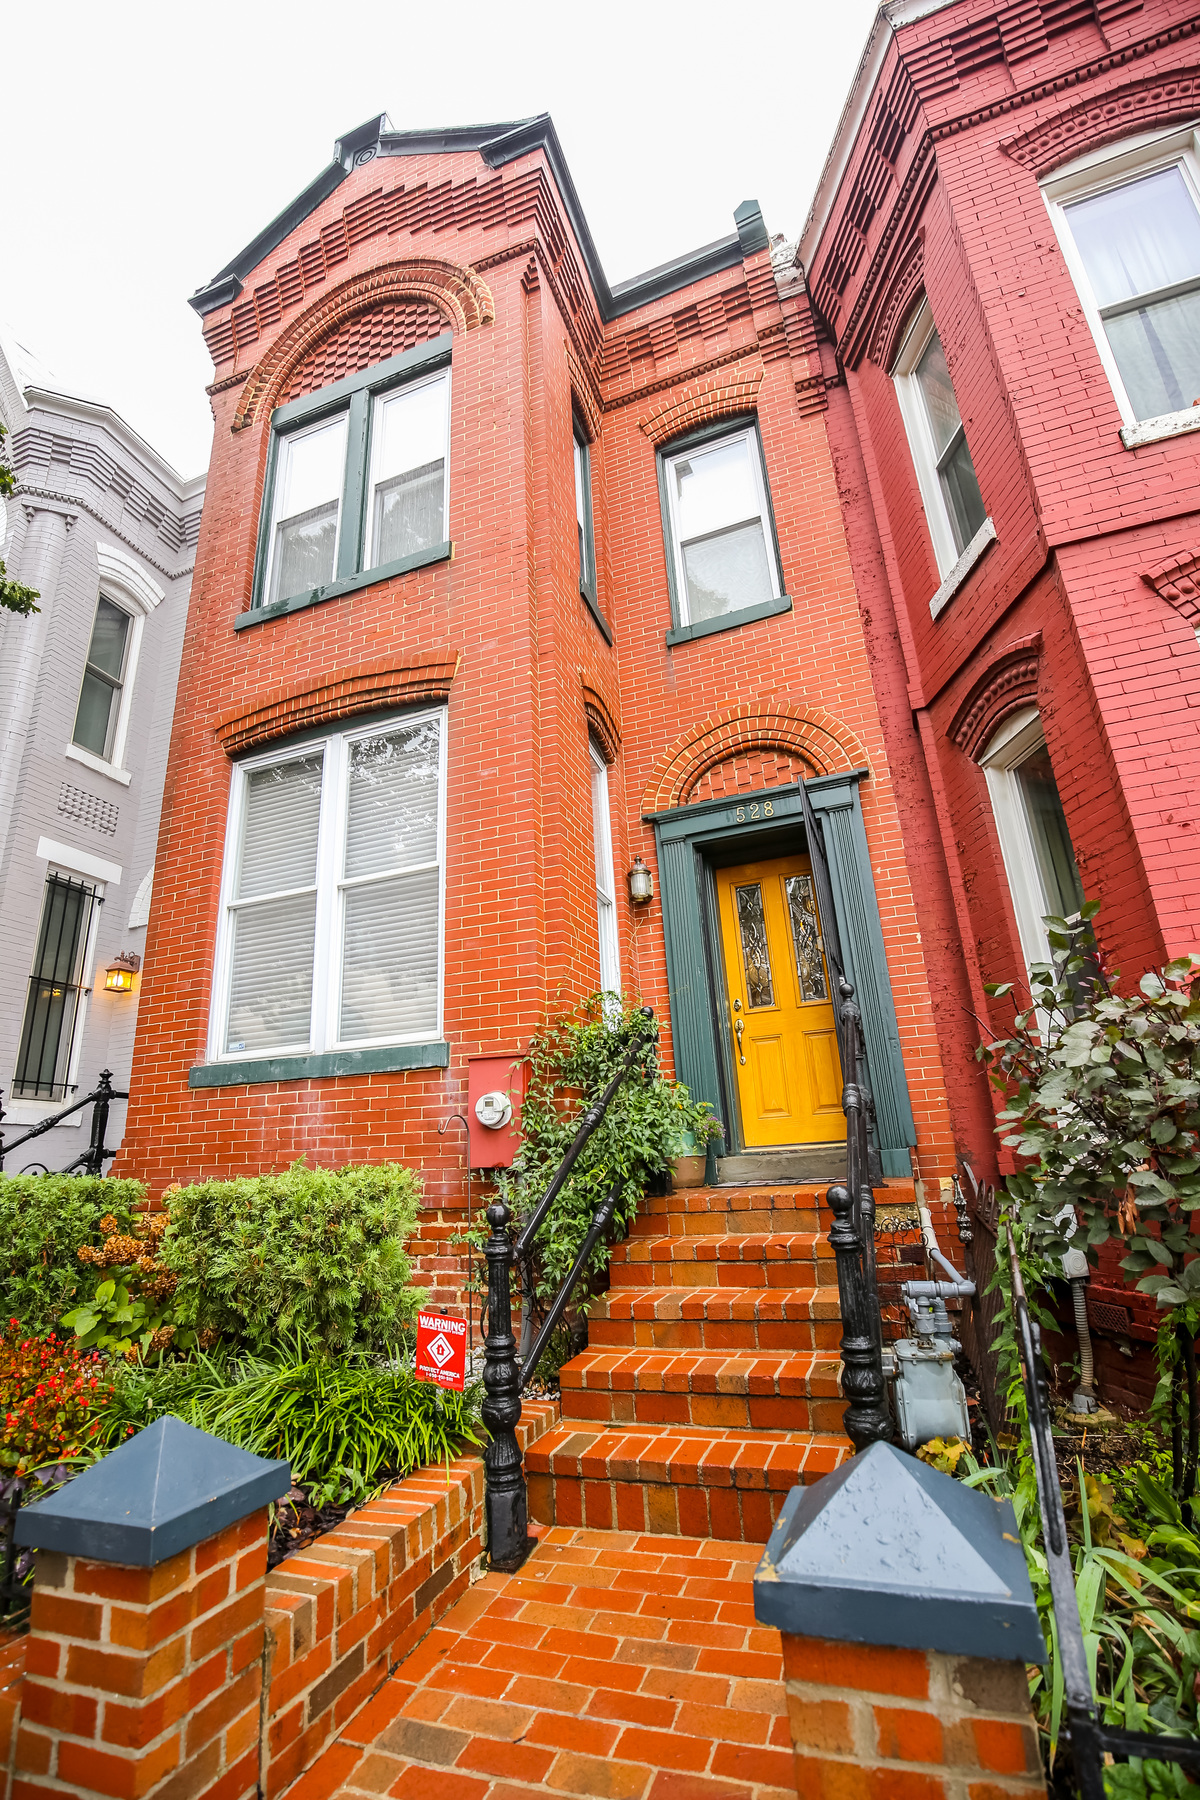 Townhouse for Sale at 528 4th Street Ne, Washington Capitol Hill, Washington, District Of Columbia 20002 United States